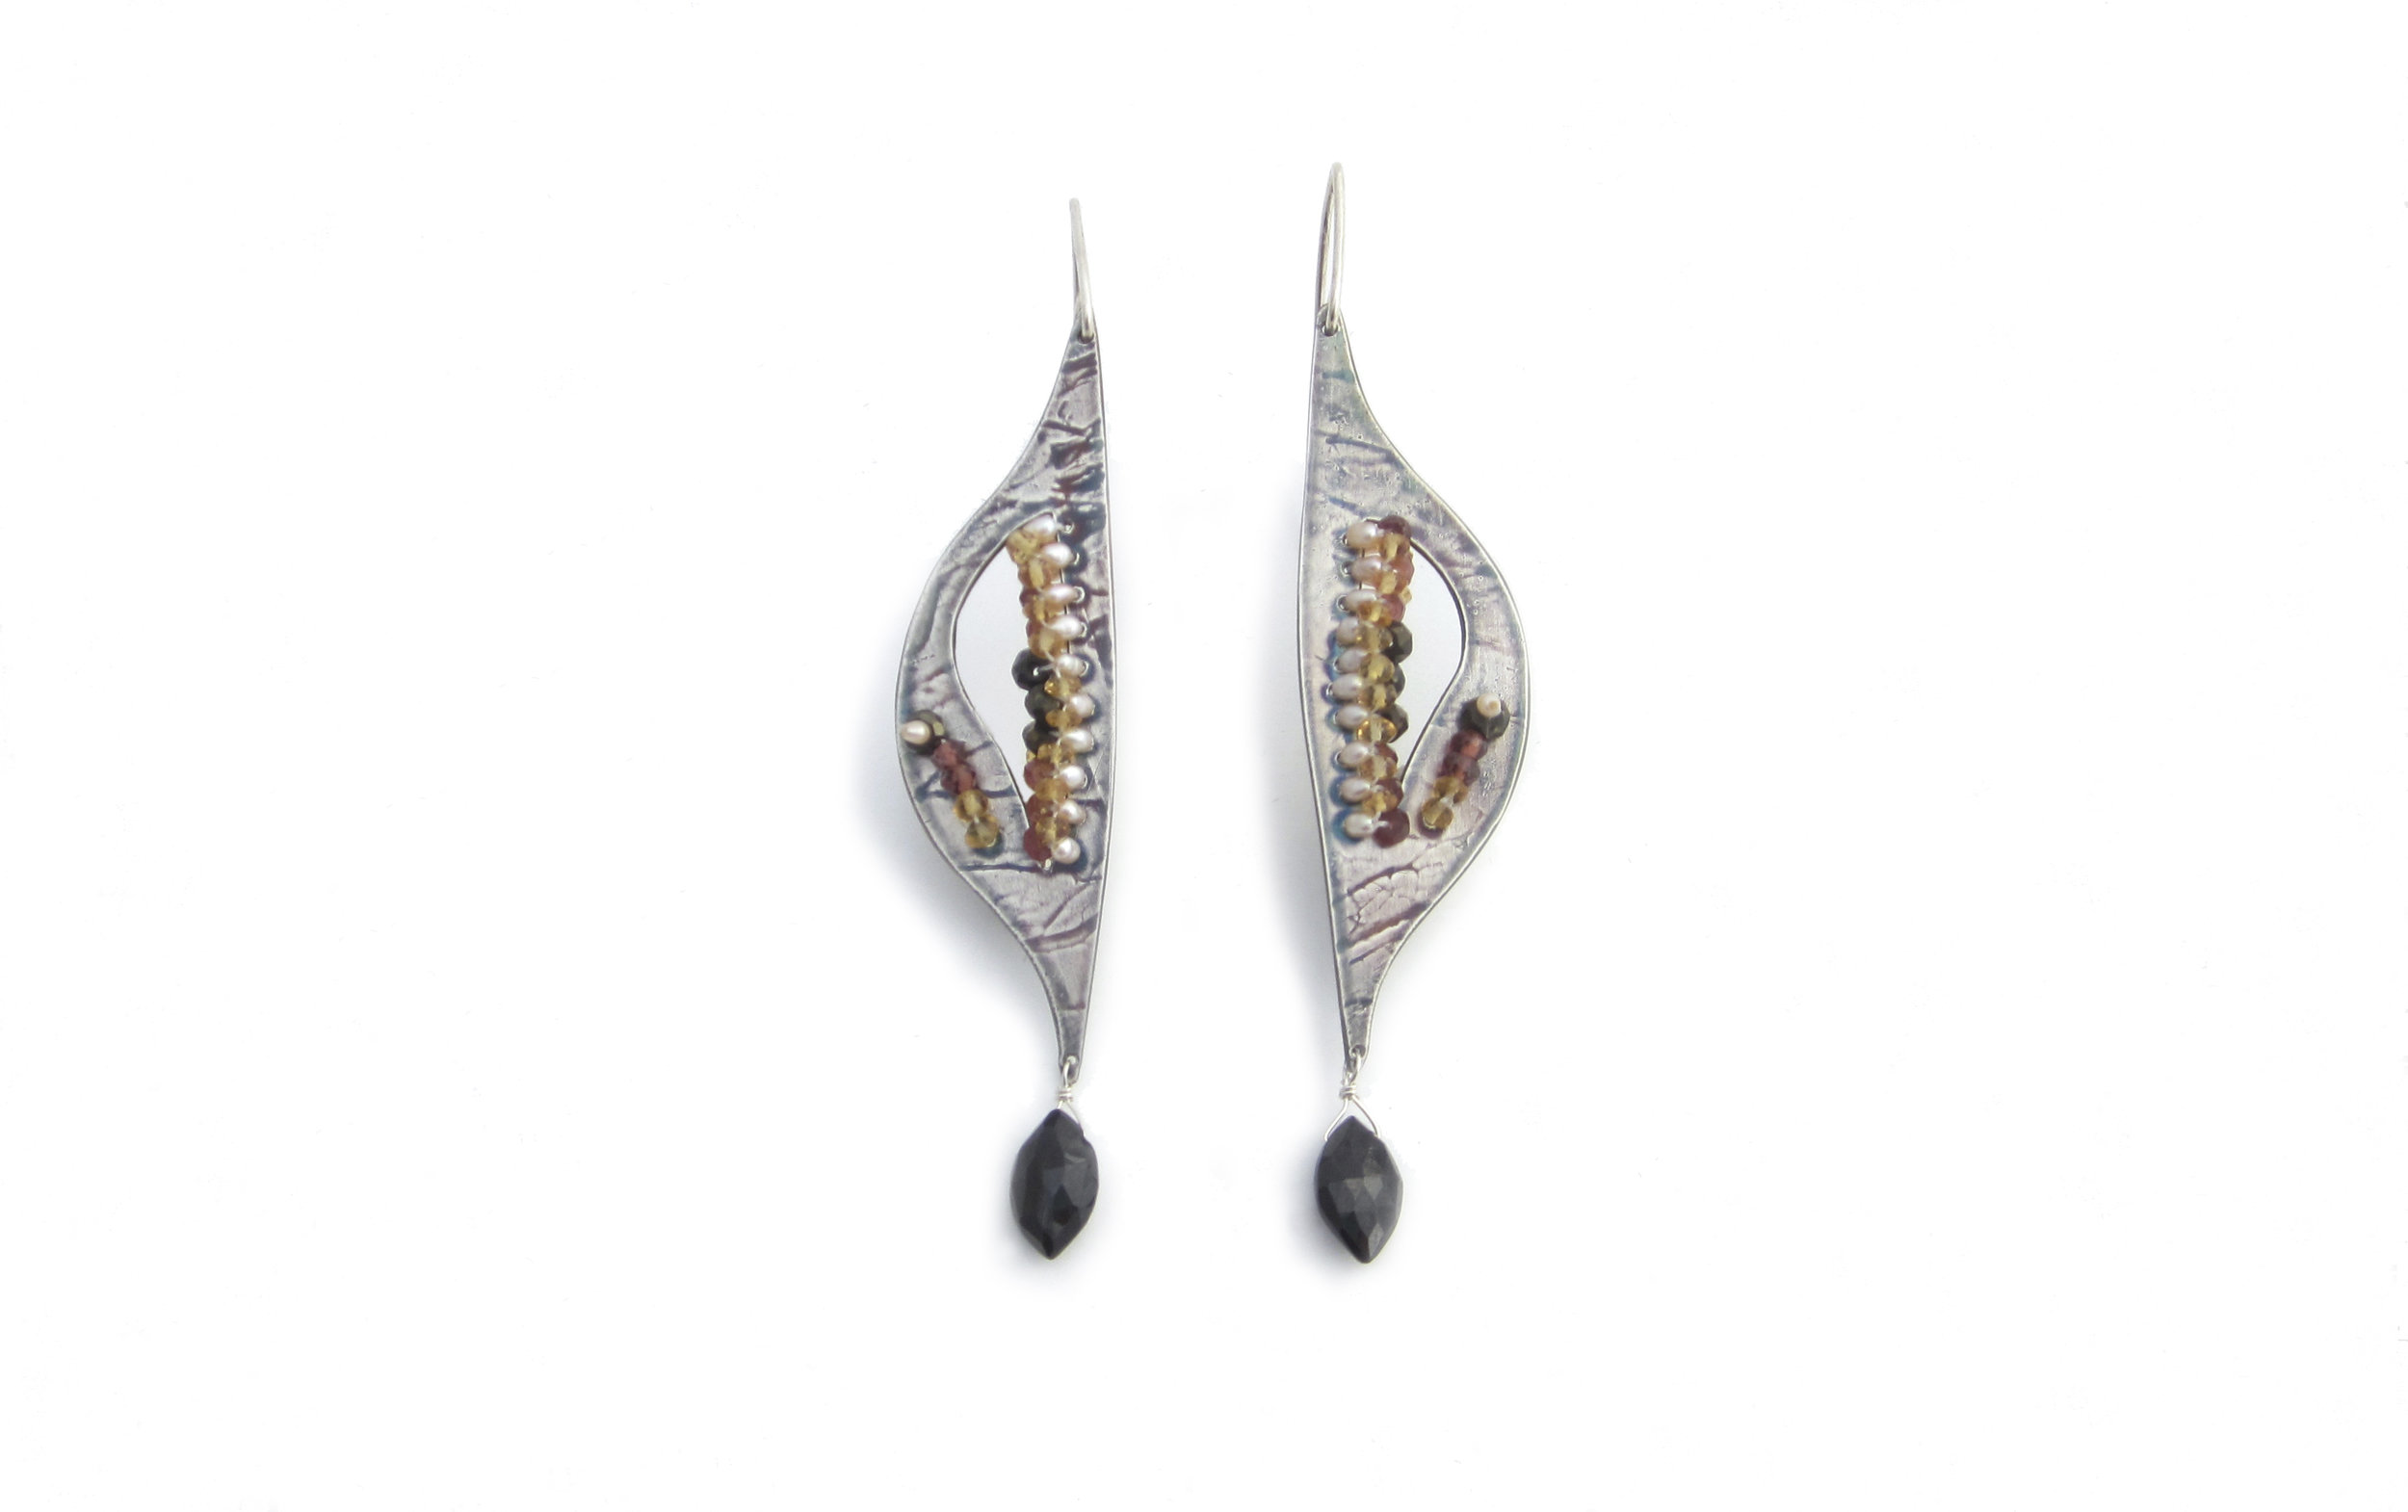 FoldNStitch_Earrings#16_LexiDaly_Lrg.jpg